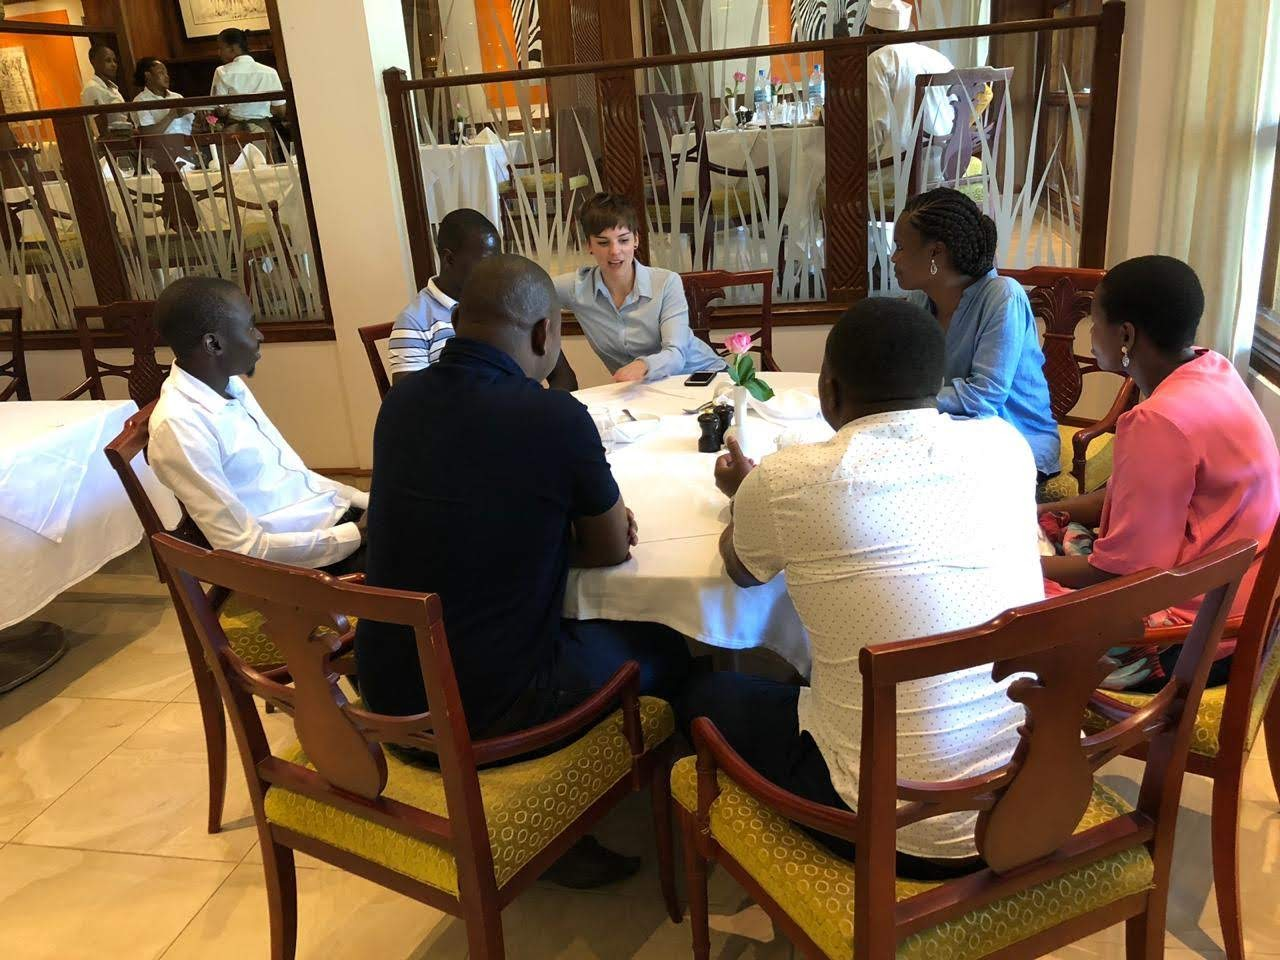 Photo of Andi Thomas meeting with people in Tanzania